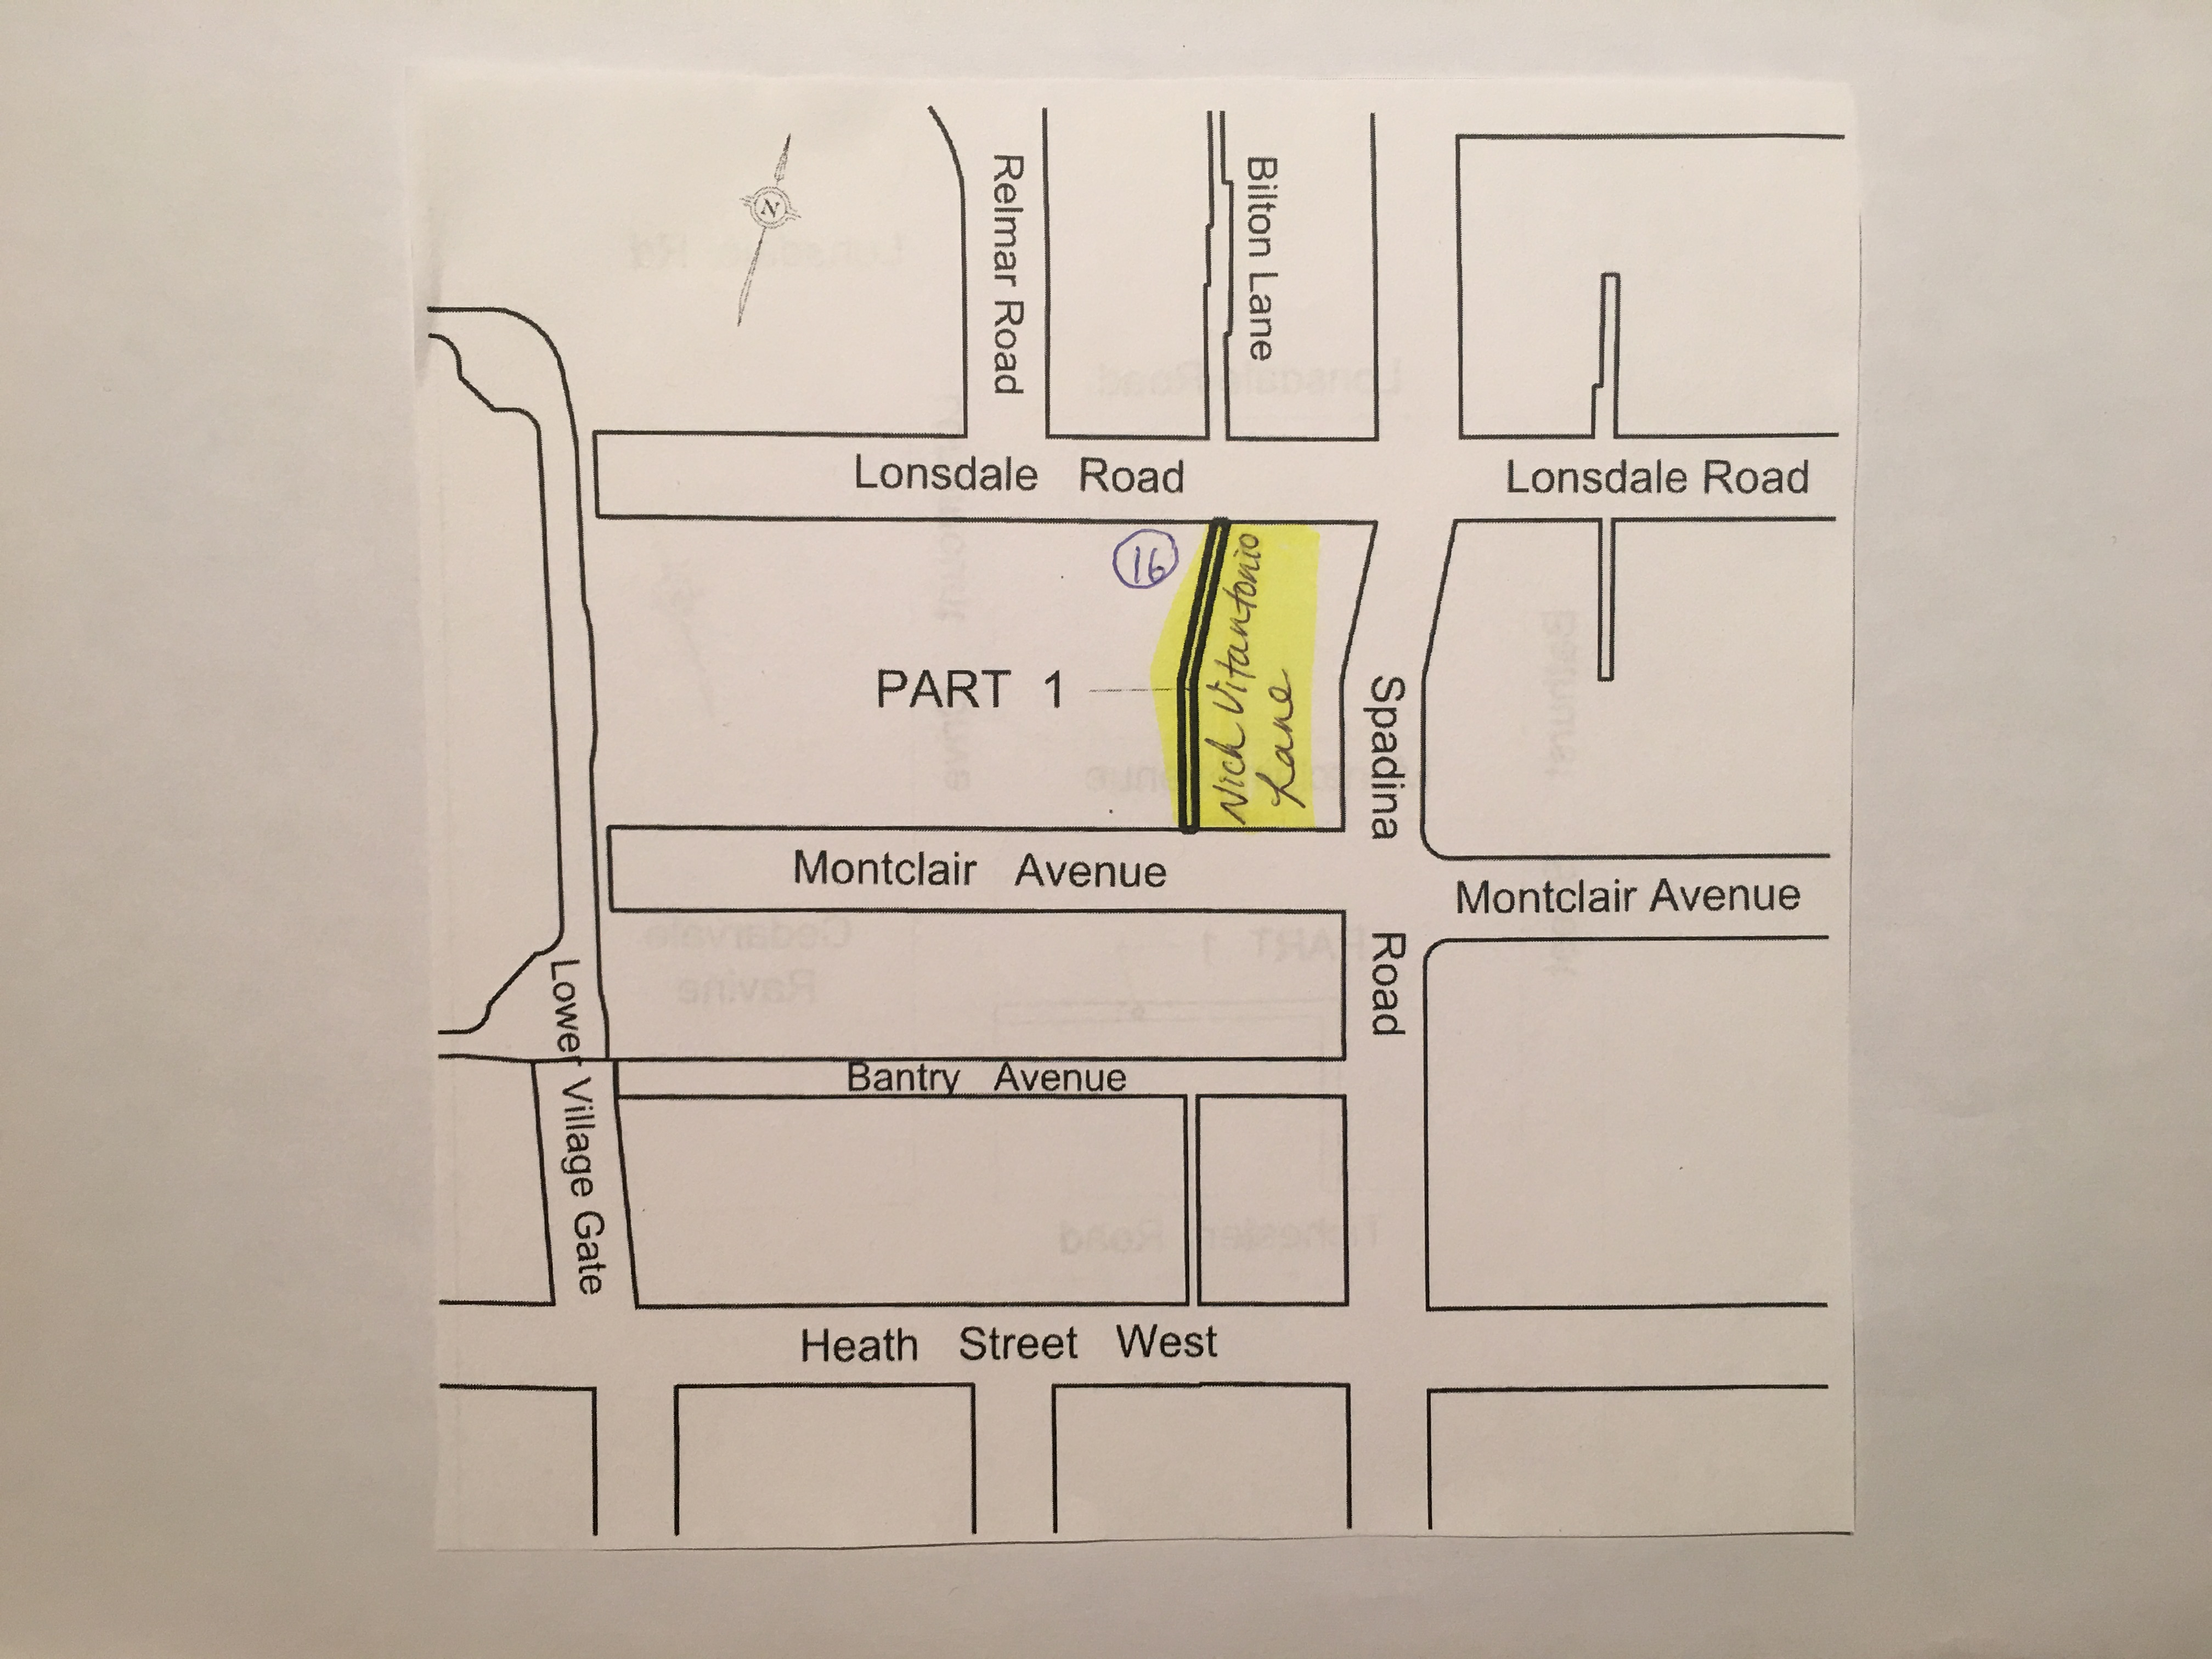 A map showing where one of the newly named lanes is located.